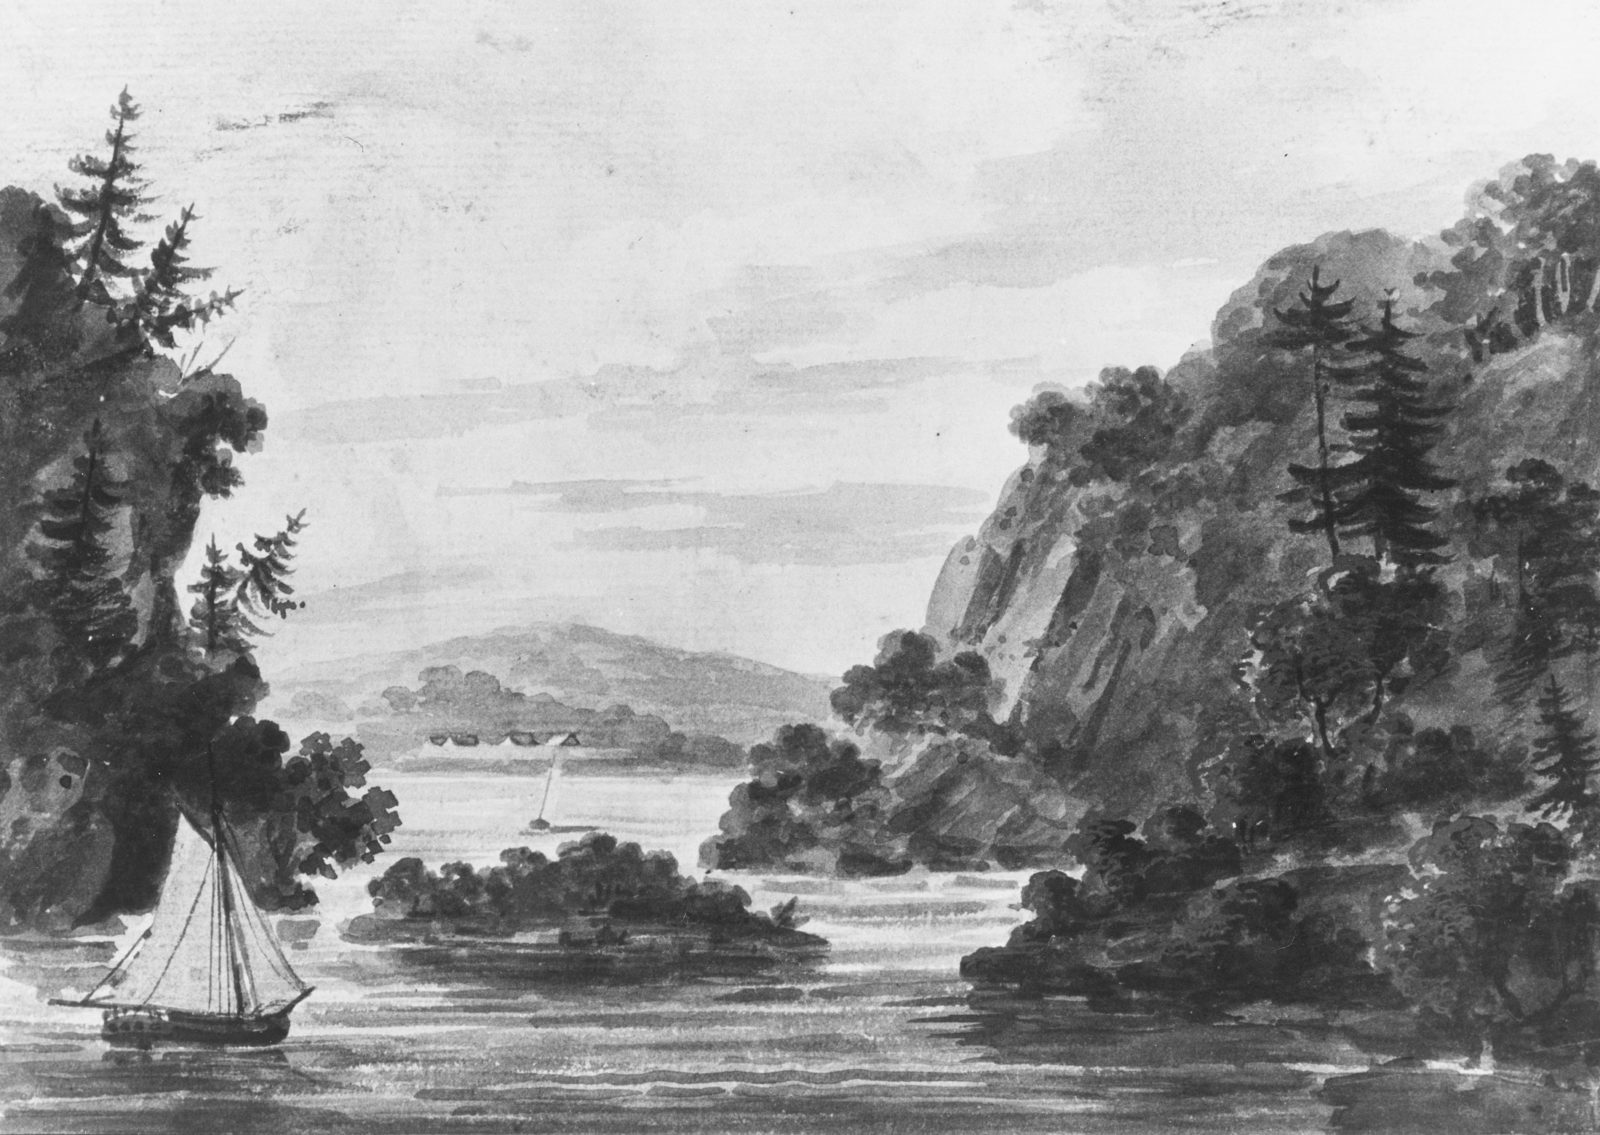 View on the Hudson River (Copy after Engraving by Weld and S. Springsguth in Weld, Travels Through the States of North America, 1807)